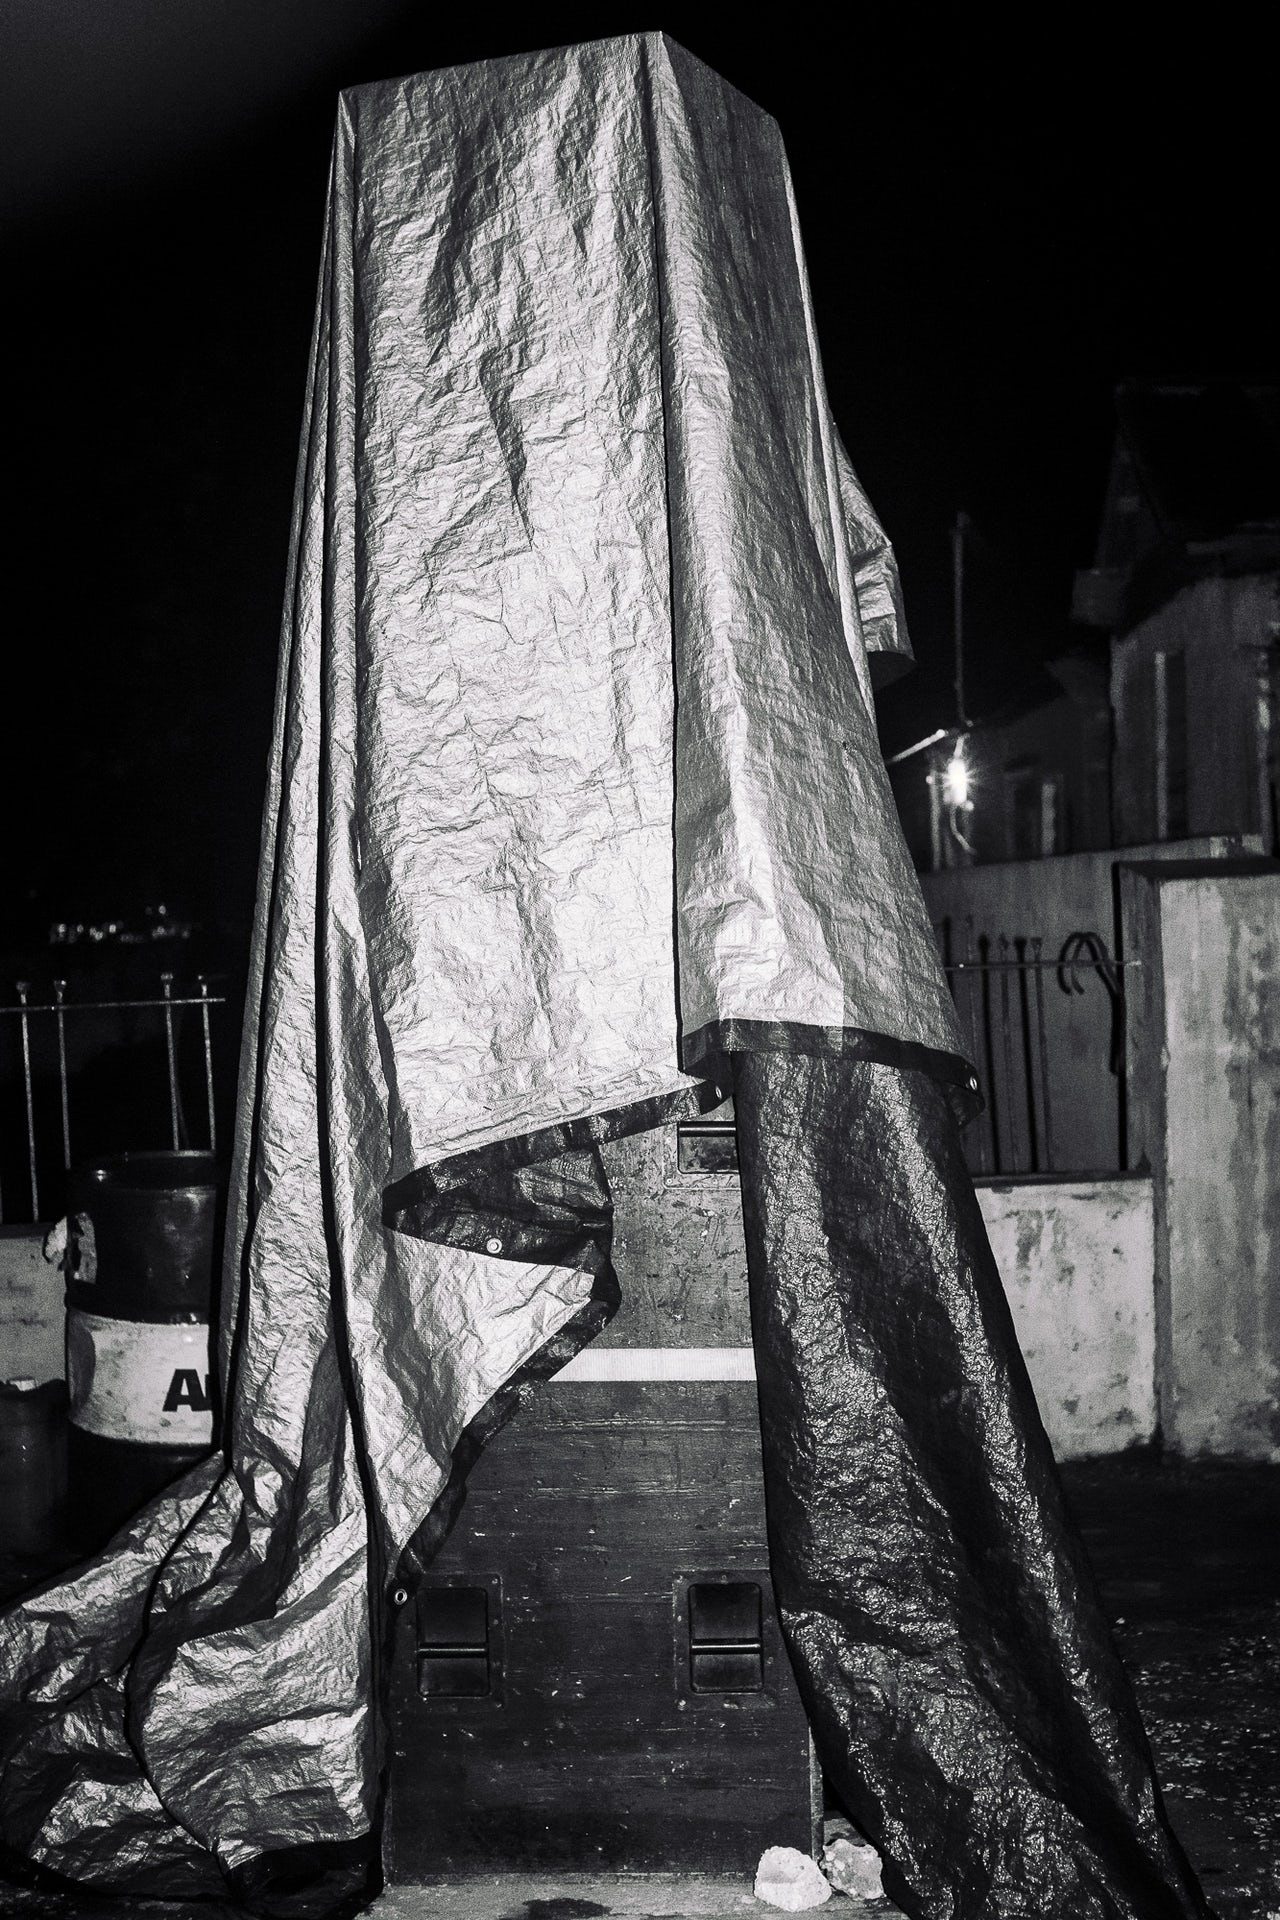 A custom hand made speaker stack for the sound system Presto Mix, tarped against impending rainfall at 1 AM before the beginning of Day Rave Thursdays, a popular weekly party in Greenwich Farm, Kingston. The party usually starts around 3 AM and runs until well after sunrise.